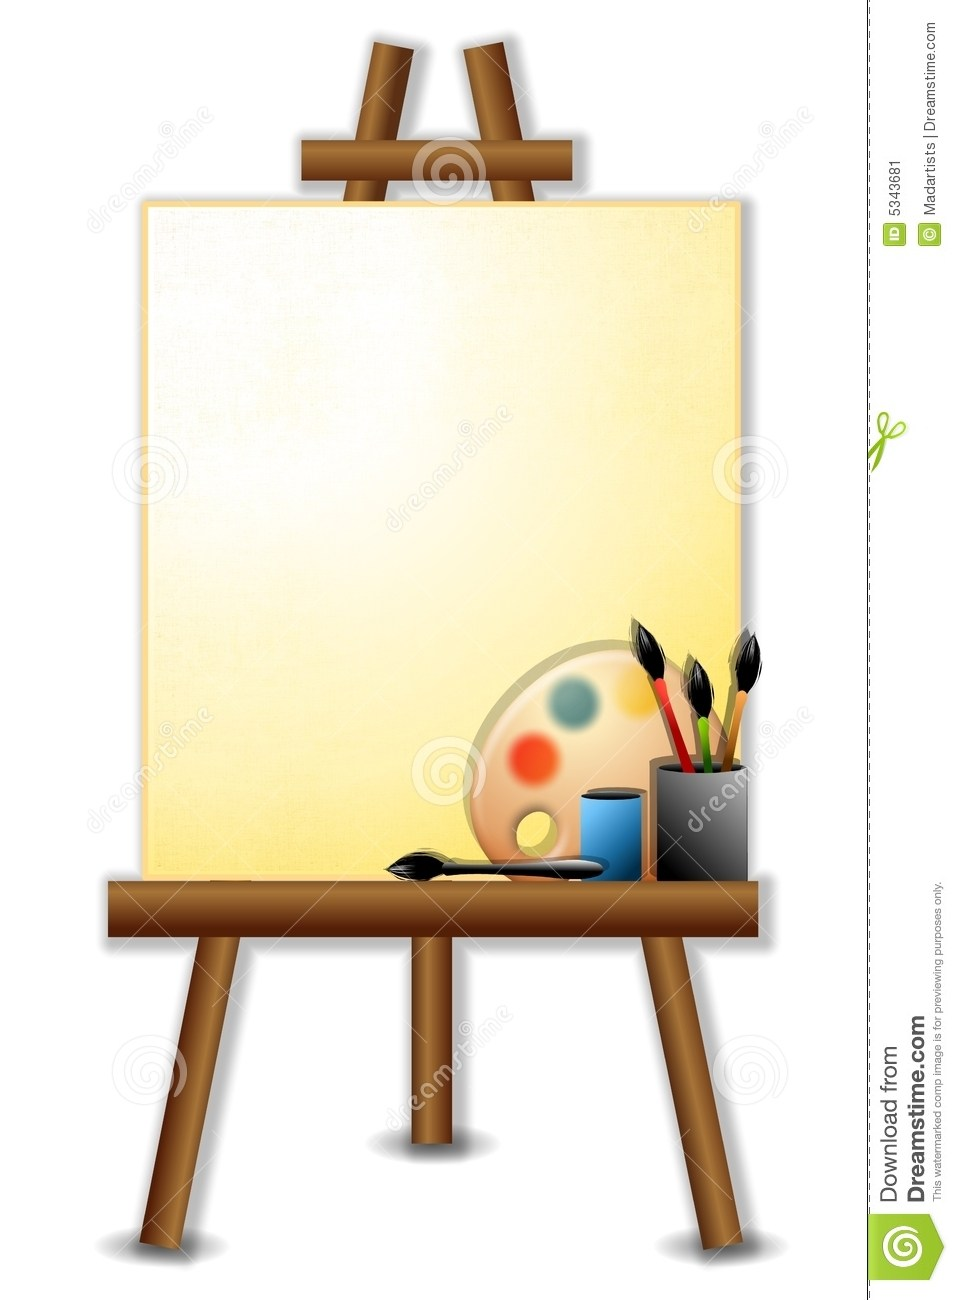 Free easel clipart graphic free Easel clipart free 2 » Clipart Portal graphic free